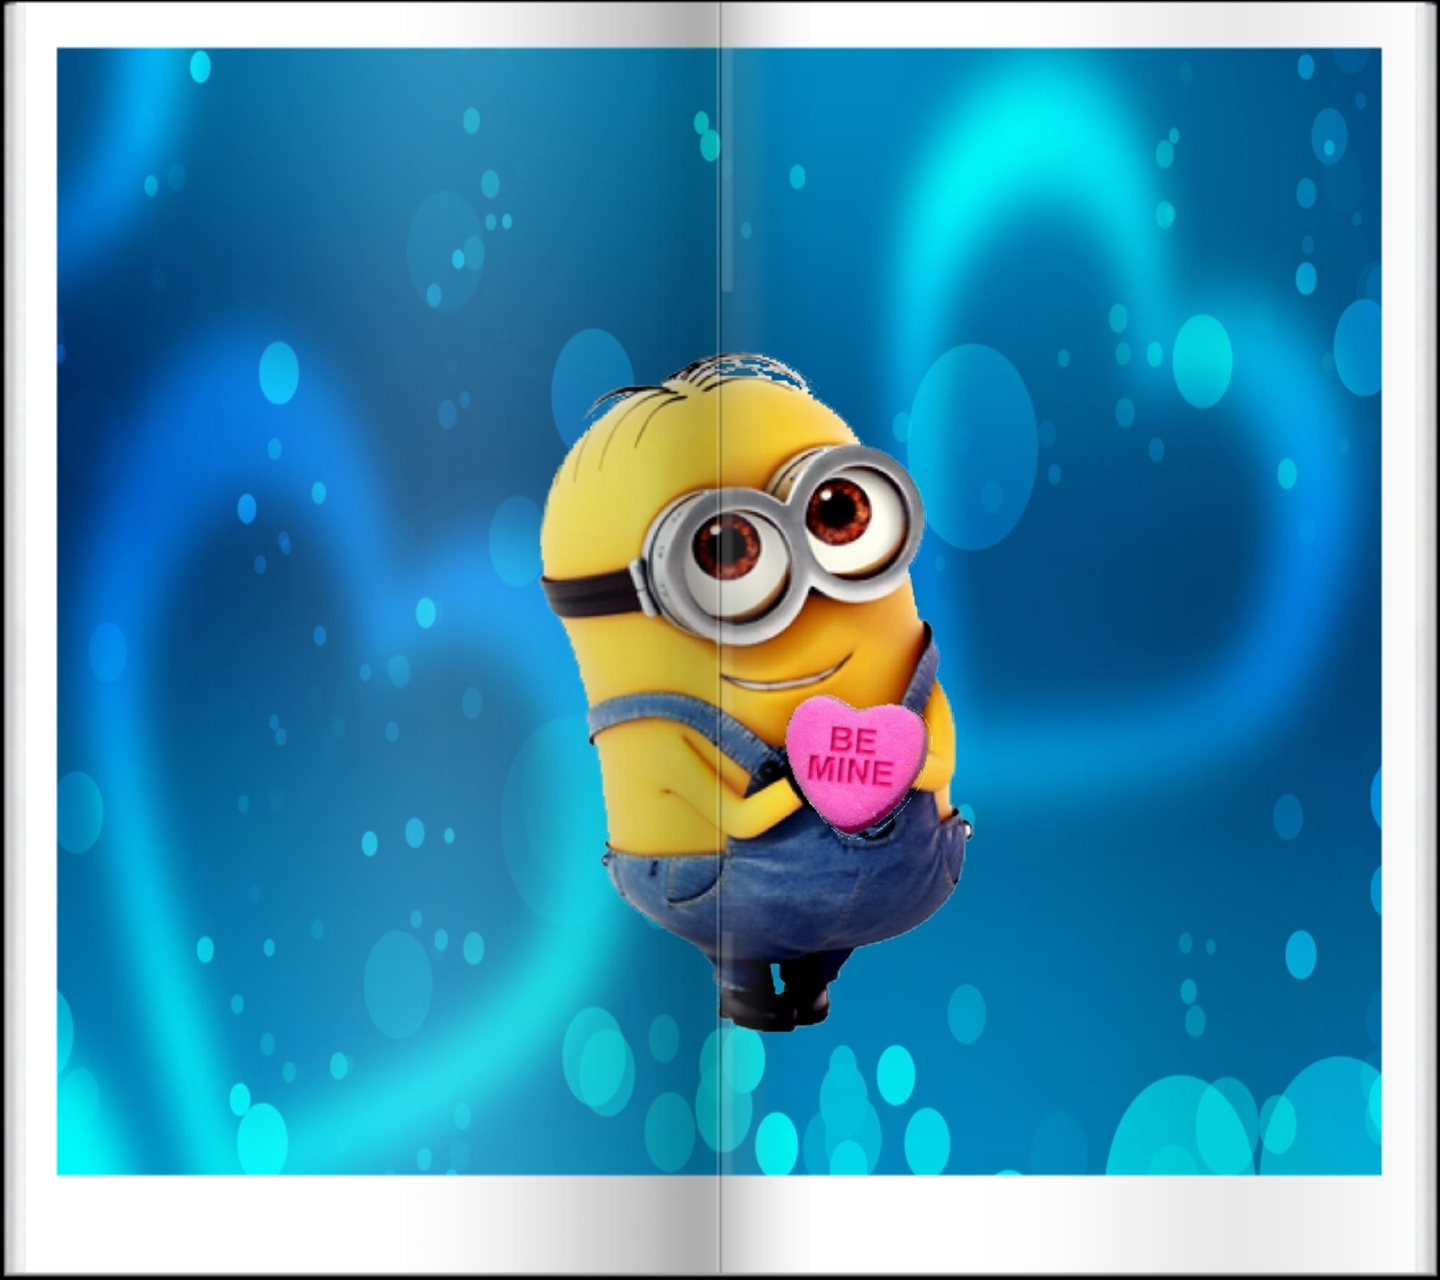 HD Minion Wallpapers (45 Wallpapers)